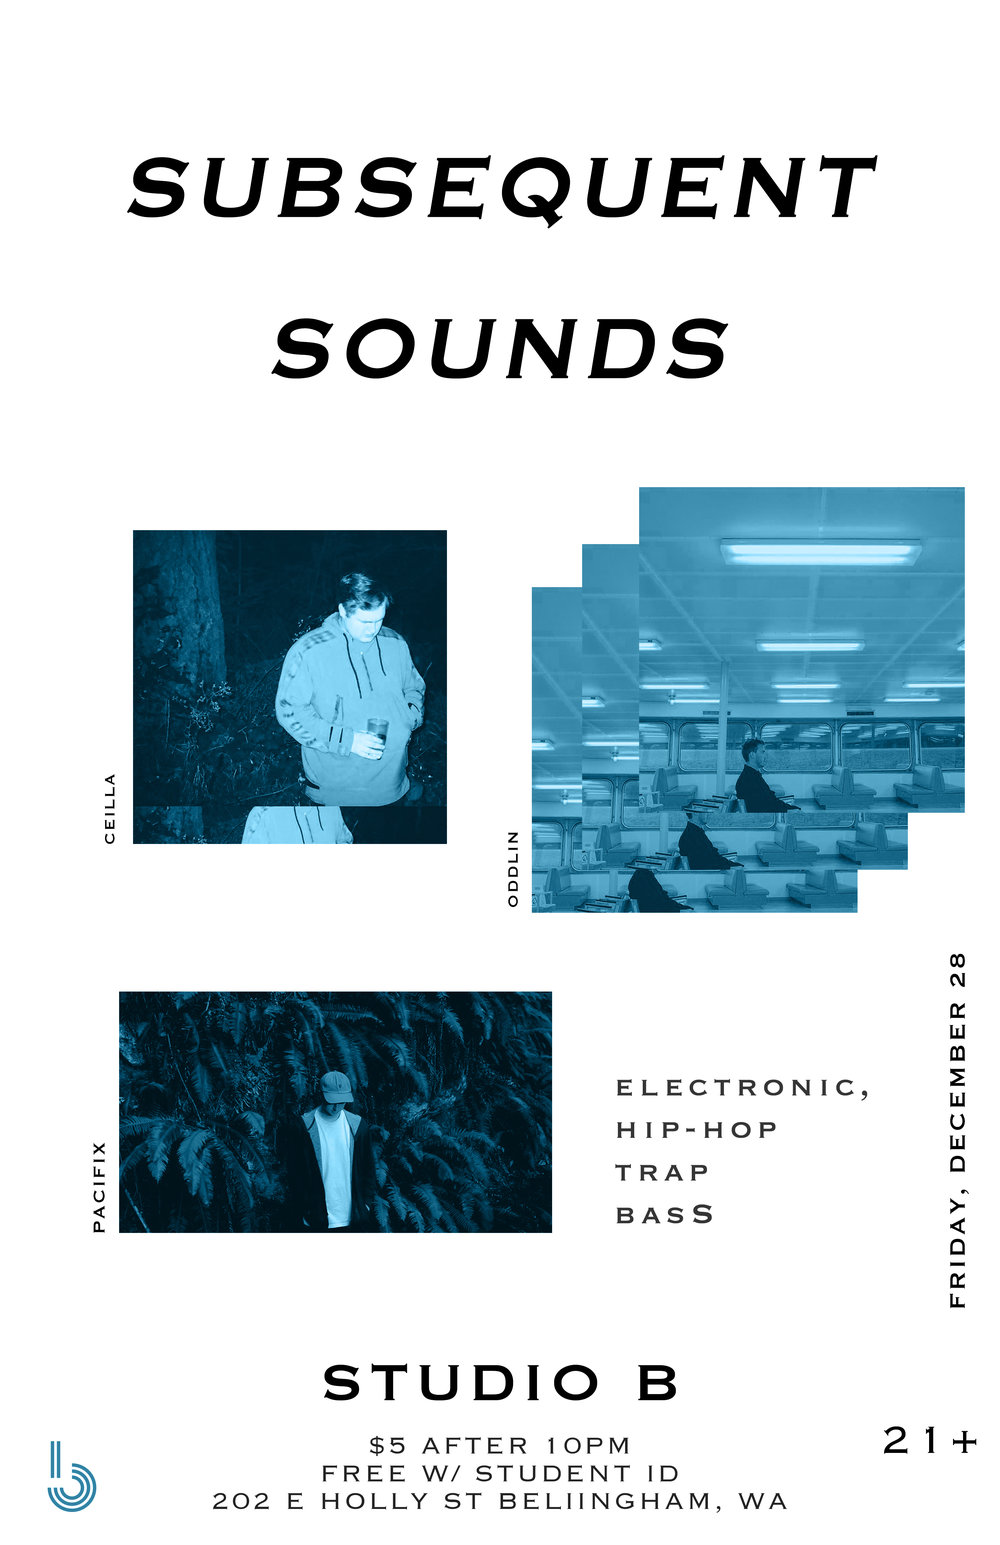 Copy of Subsequent Sounds: Pacifix, Oddlin, Ceilla